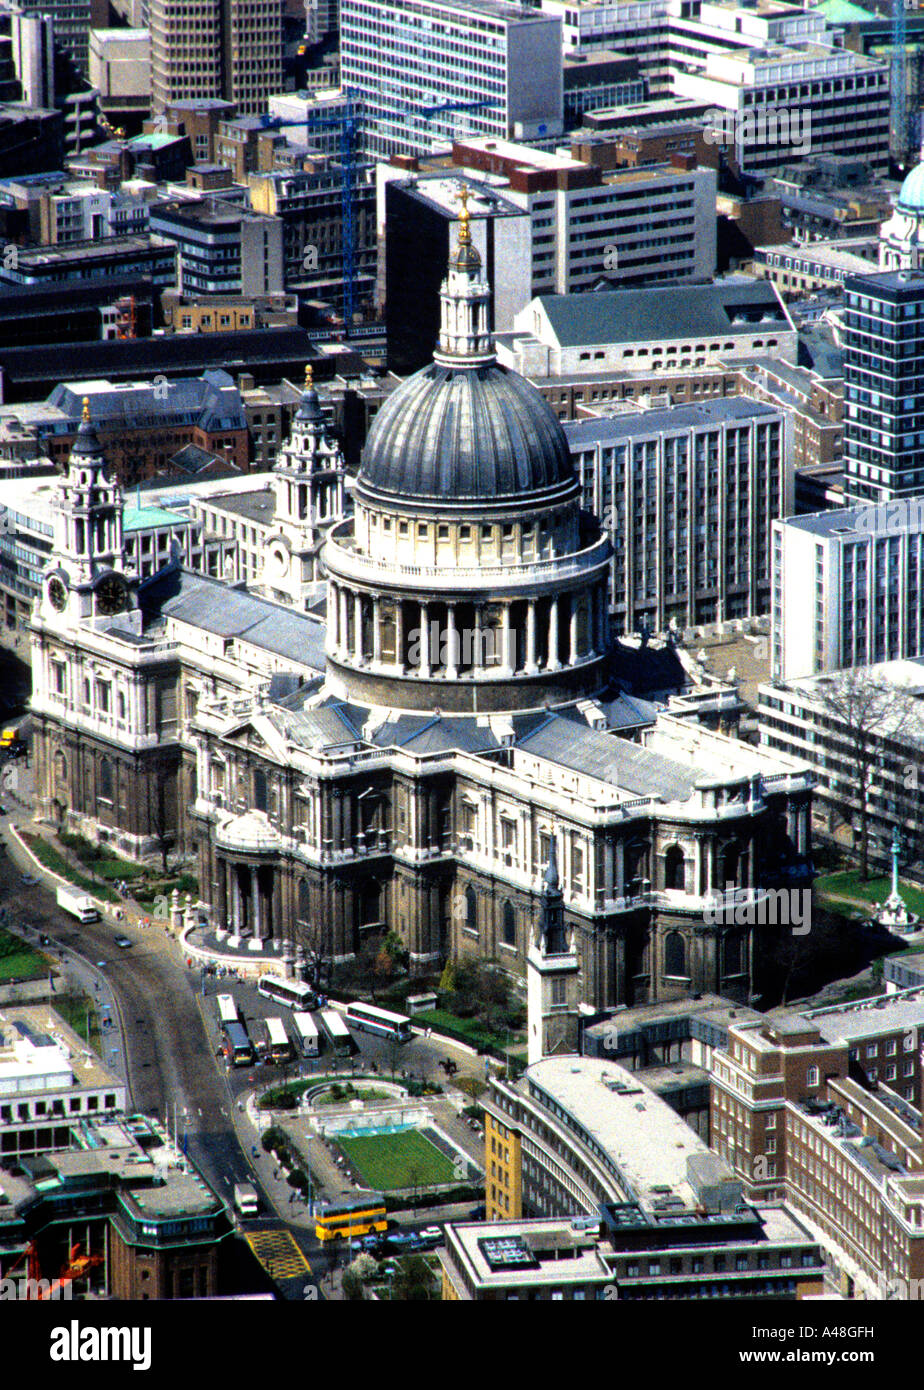 ST PAULS CATHEDRAL IN THE CITY OF LONDON ENGLAND UK - Stock Image